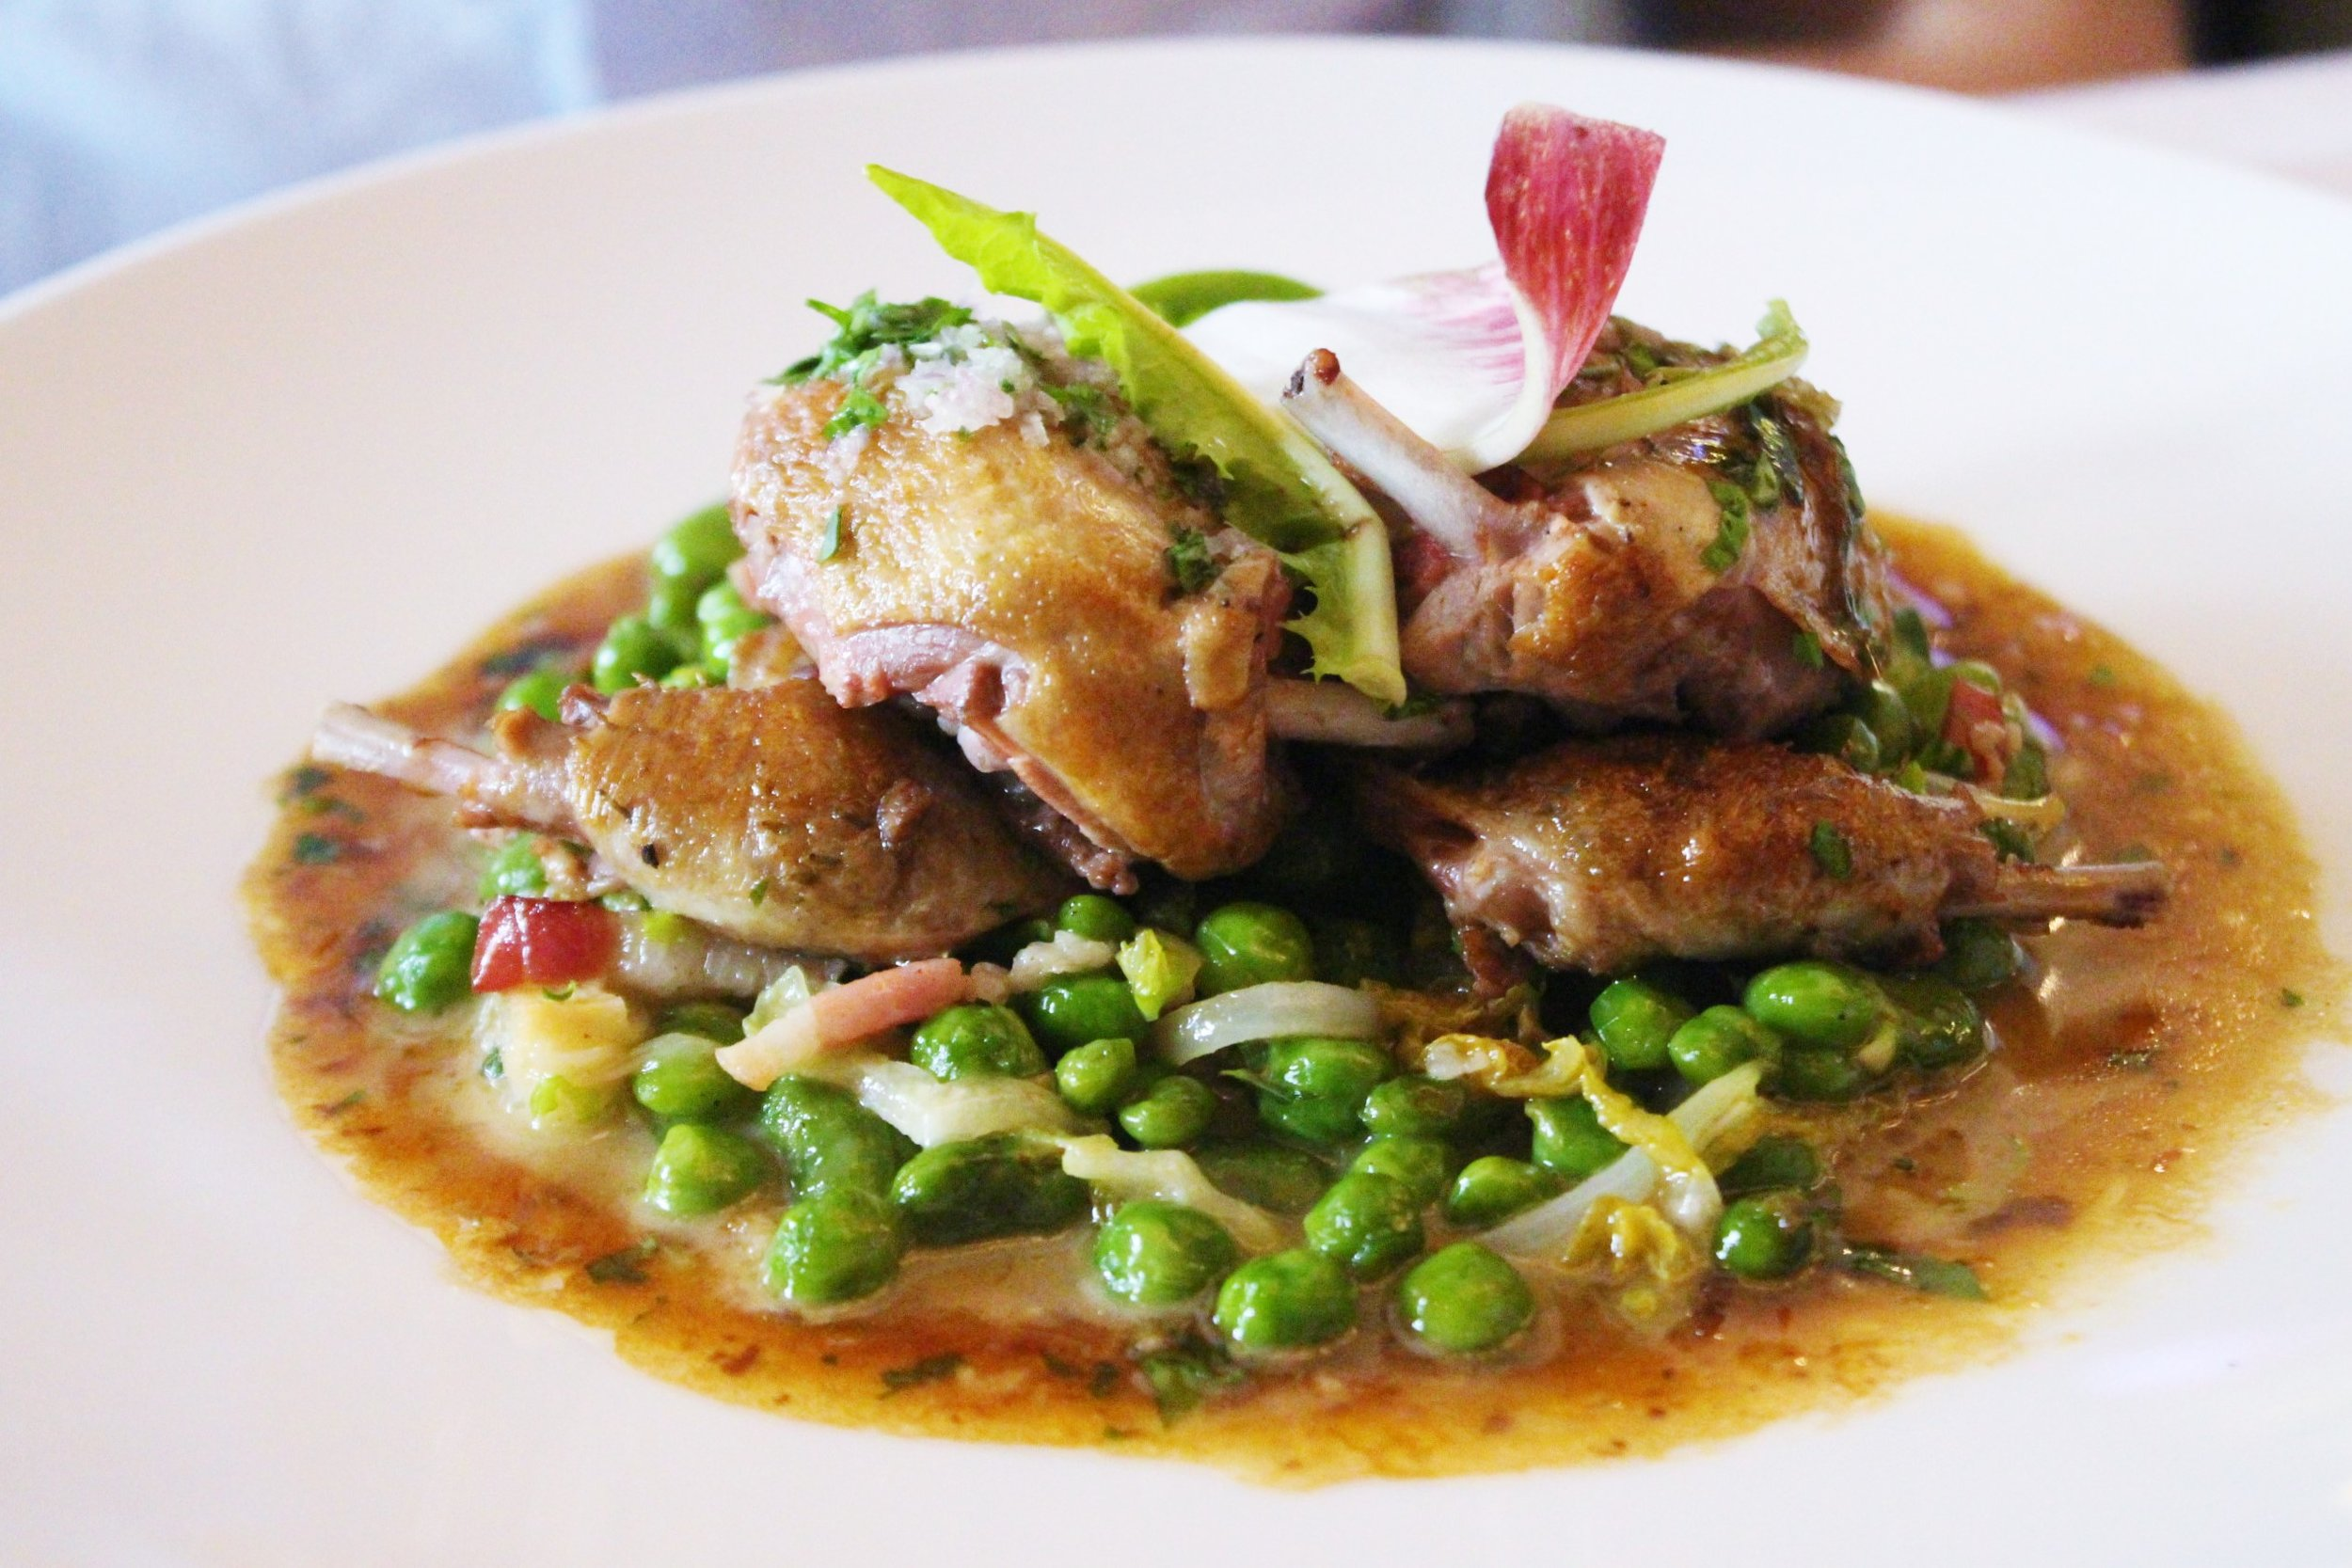 Pigeon Roasted with Grey Shallots, Petits Pois, and Broad Beans a la Francaise